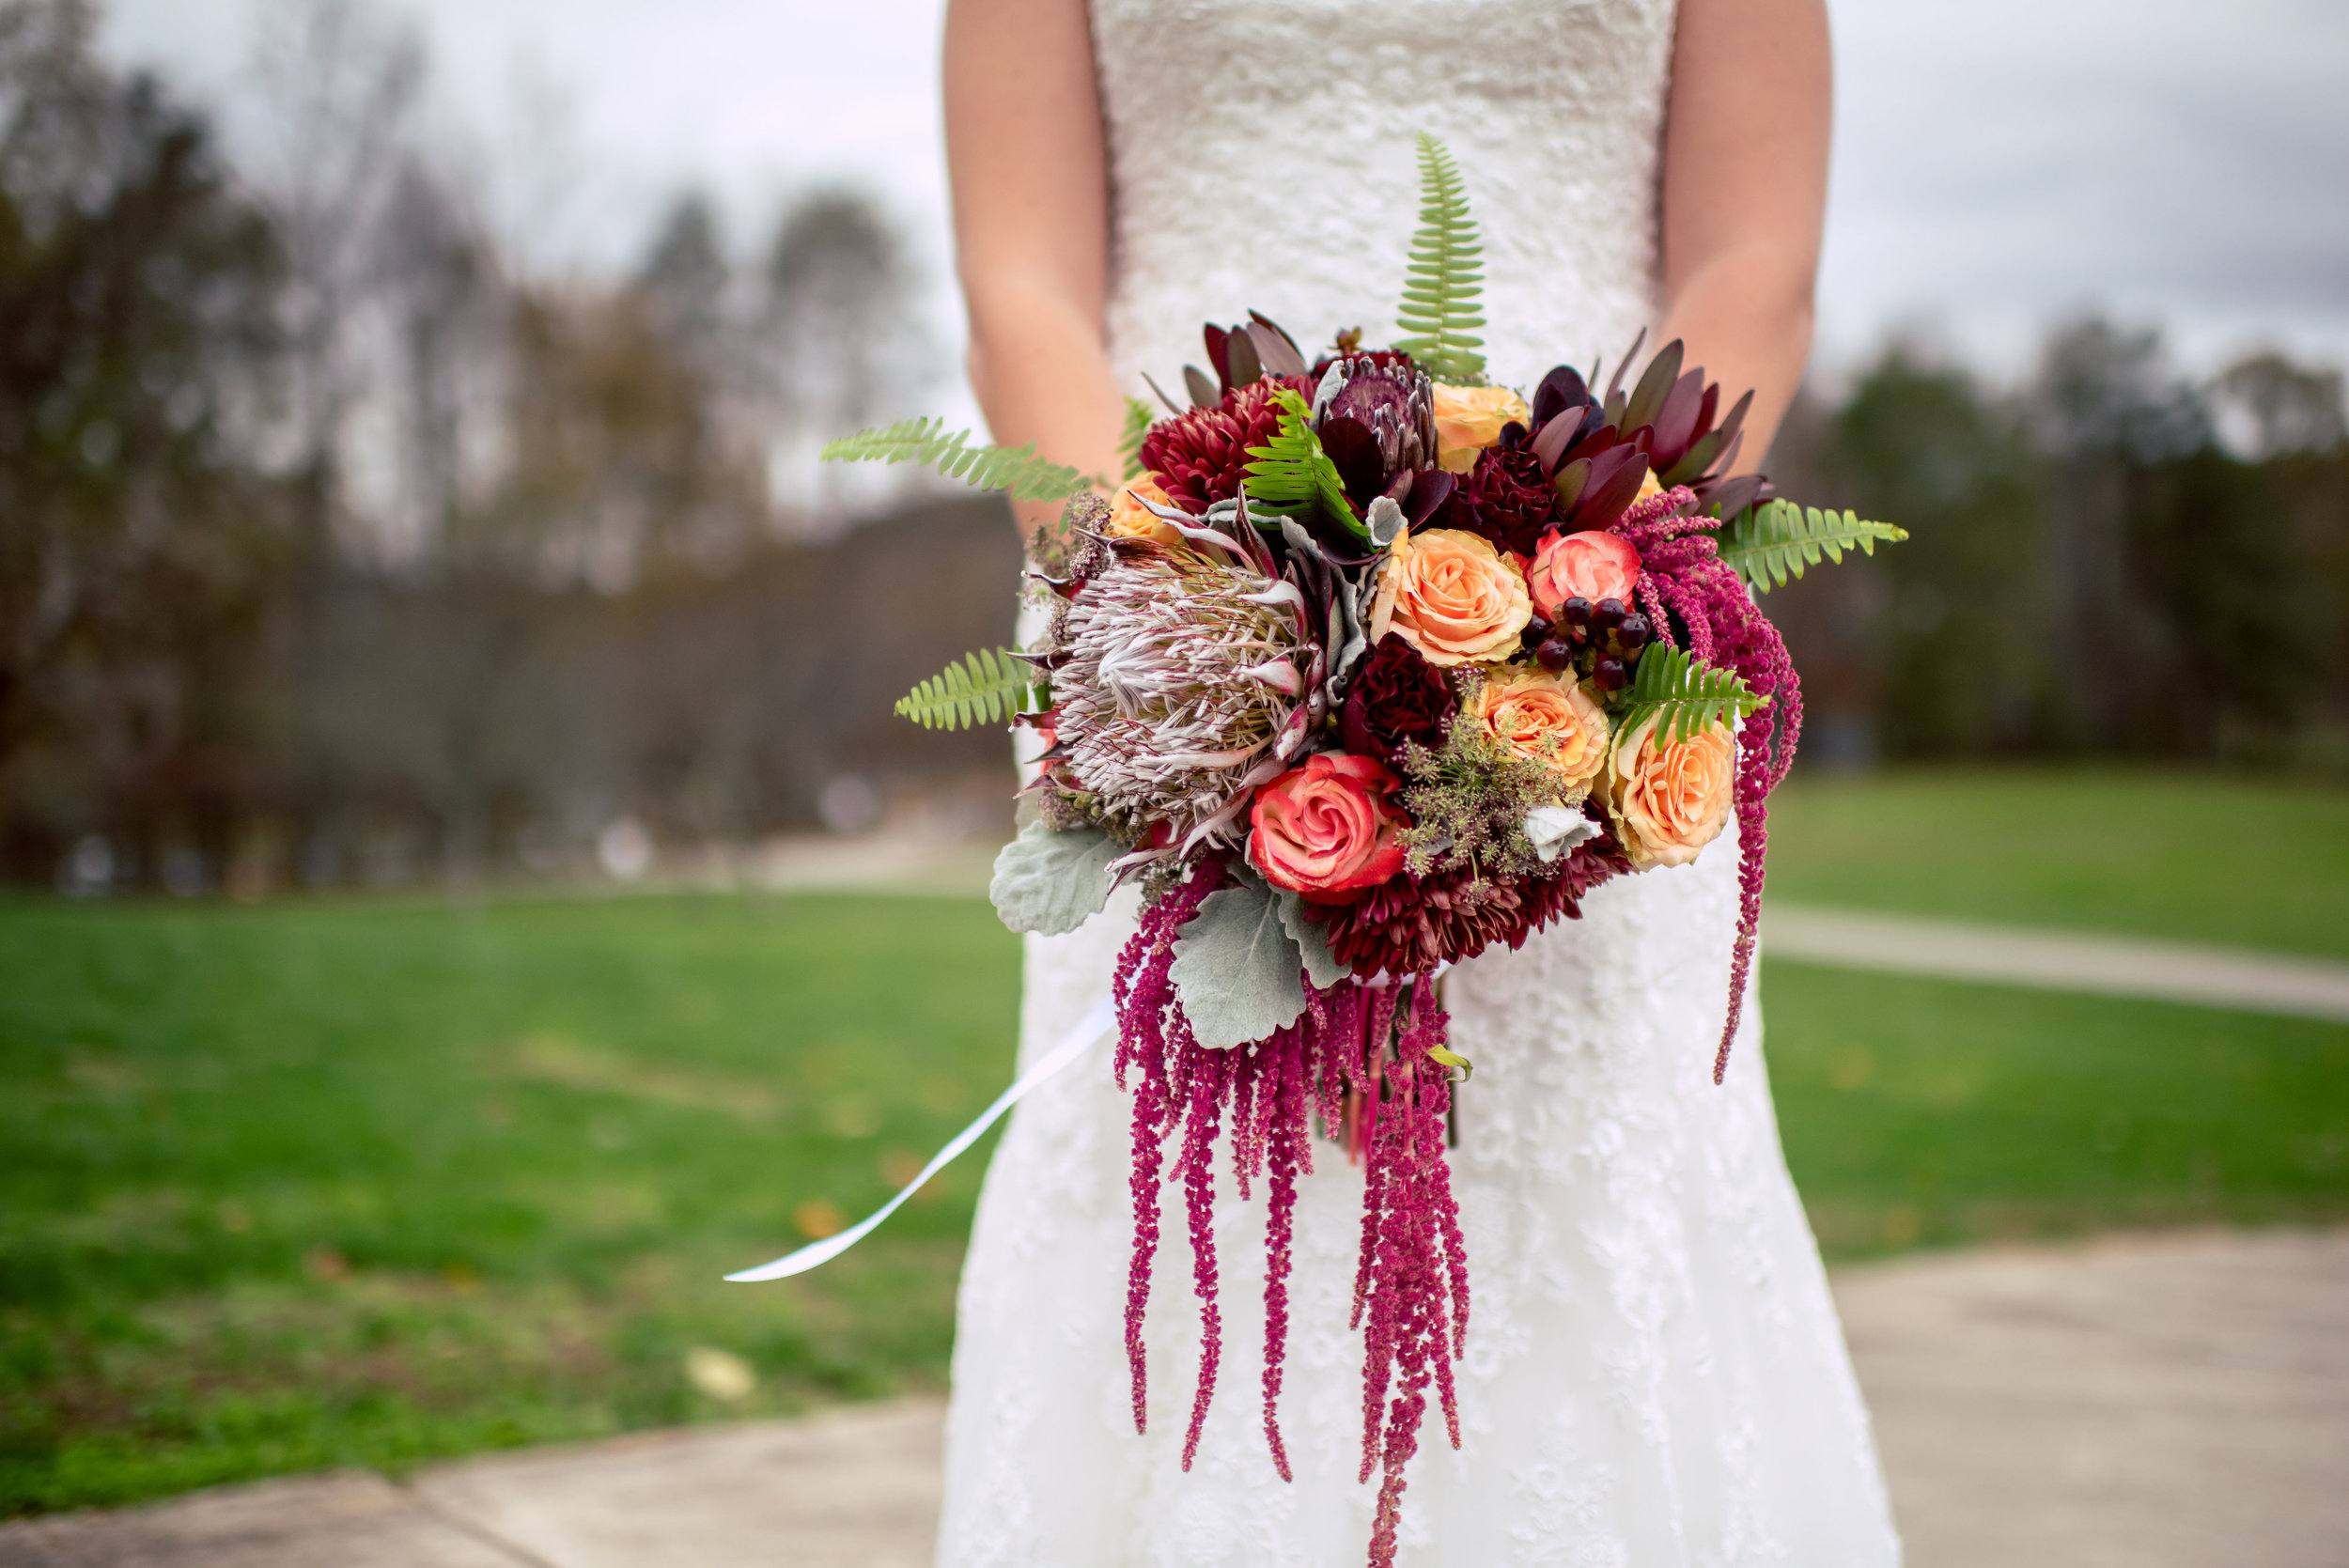 A Romantic, Jewel Toned Fall Wedding at The Ruins. Bridal Bouquet featuring jewel colored flowers including protea, leucadendron, roses, hypericum berries, hanging amaranthus and fern.| Flowers by Flower Buds. Picture by Once Like a Spark Photography. Venue The Ruins at Kellum Valley Farm